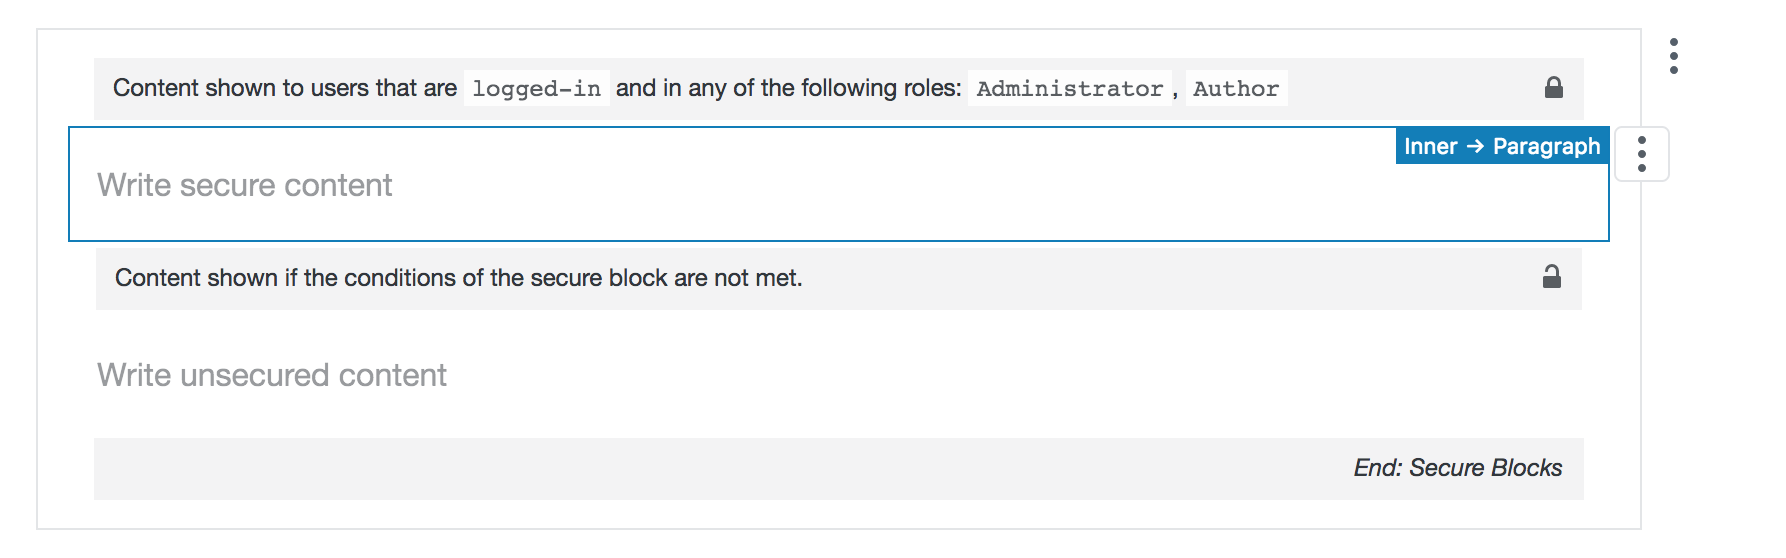 The Secure Block interface reflects the user roles you choose